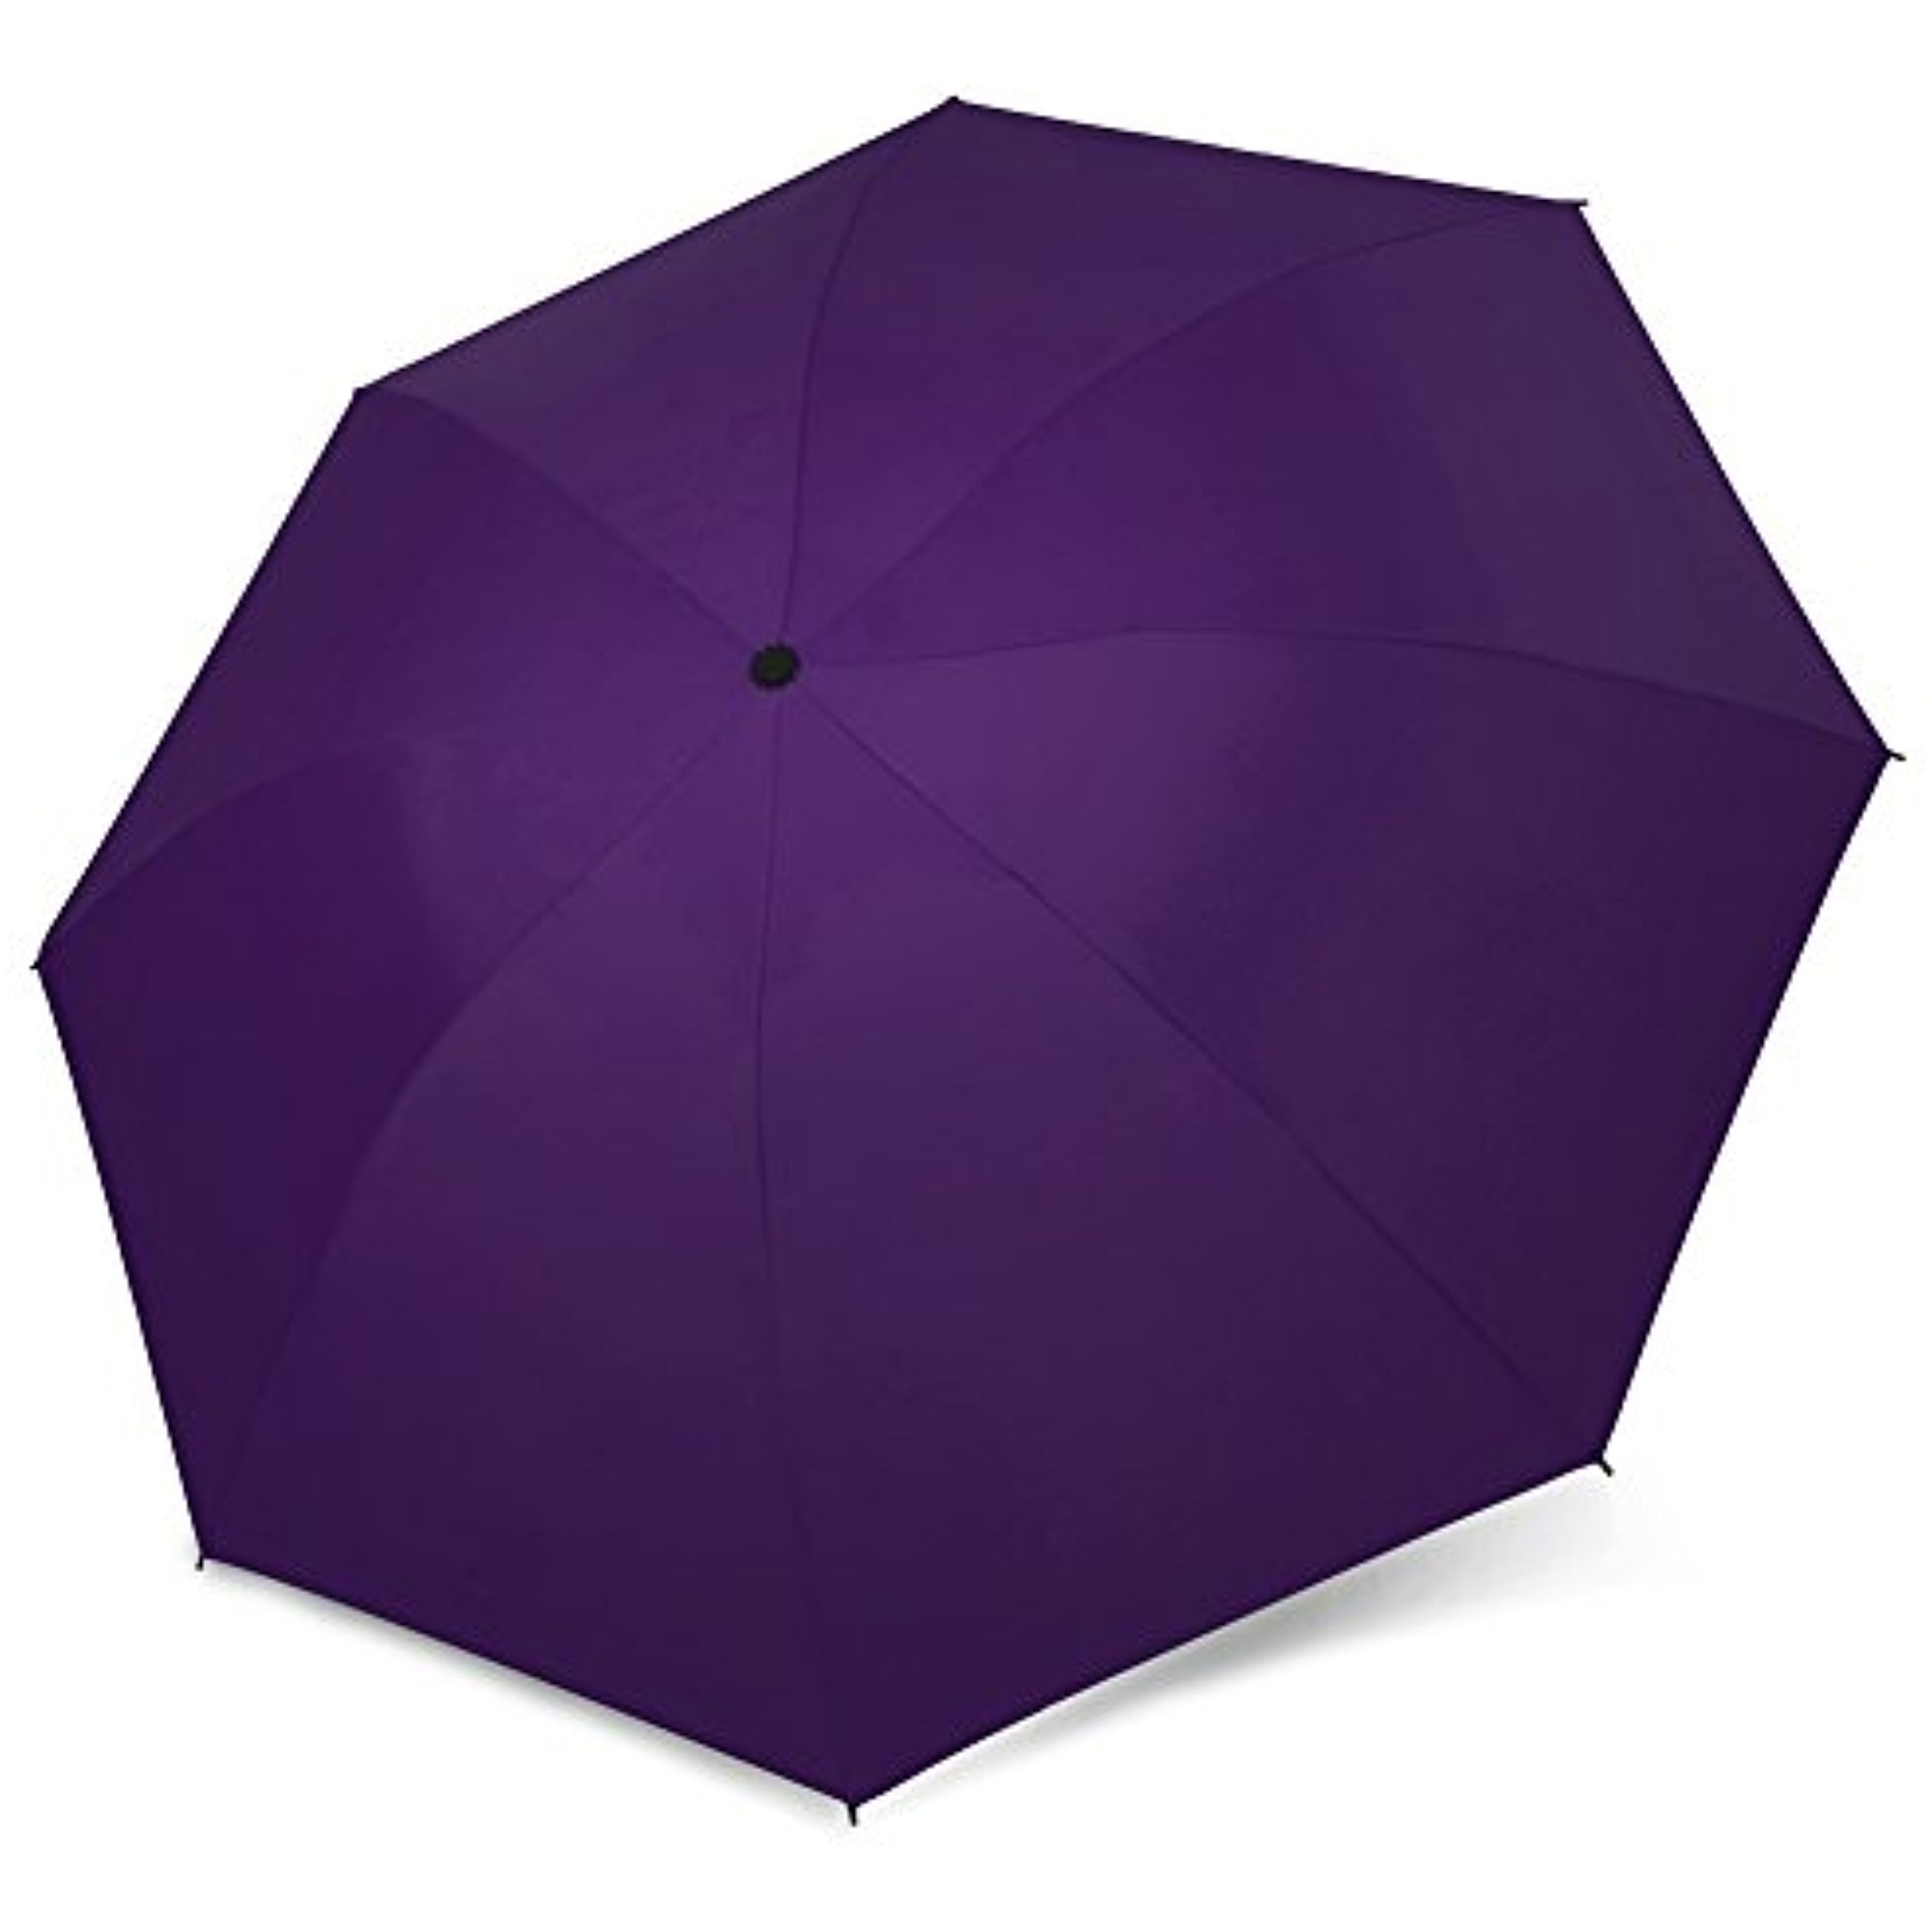 Auto Open Close Compact 46 Inch Rain Umbrella for Men Women Graphic Art Travel Umbrella Automatic Folding Umbrella